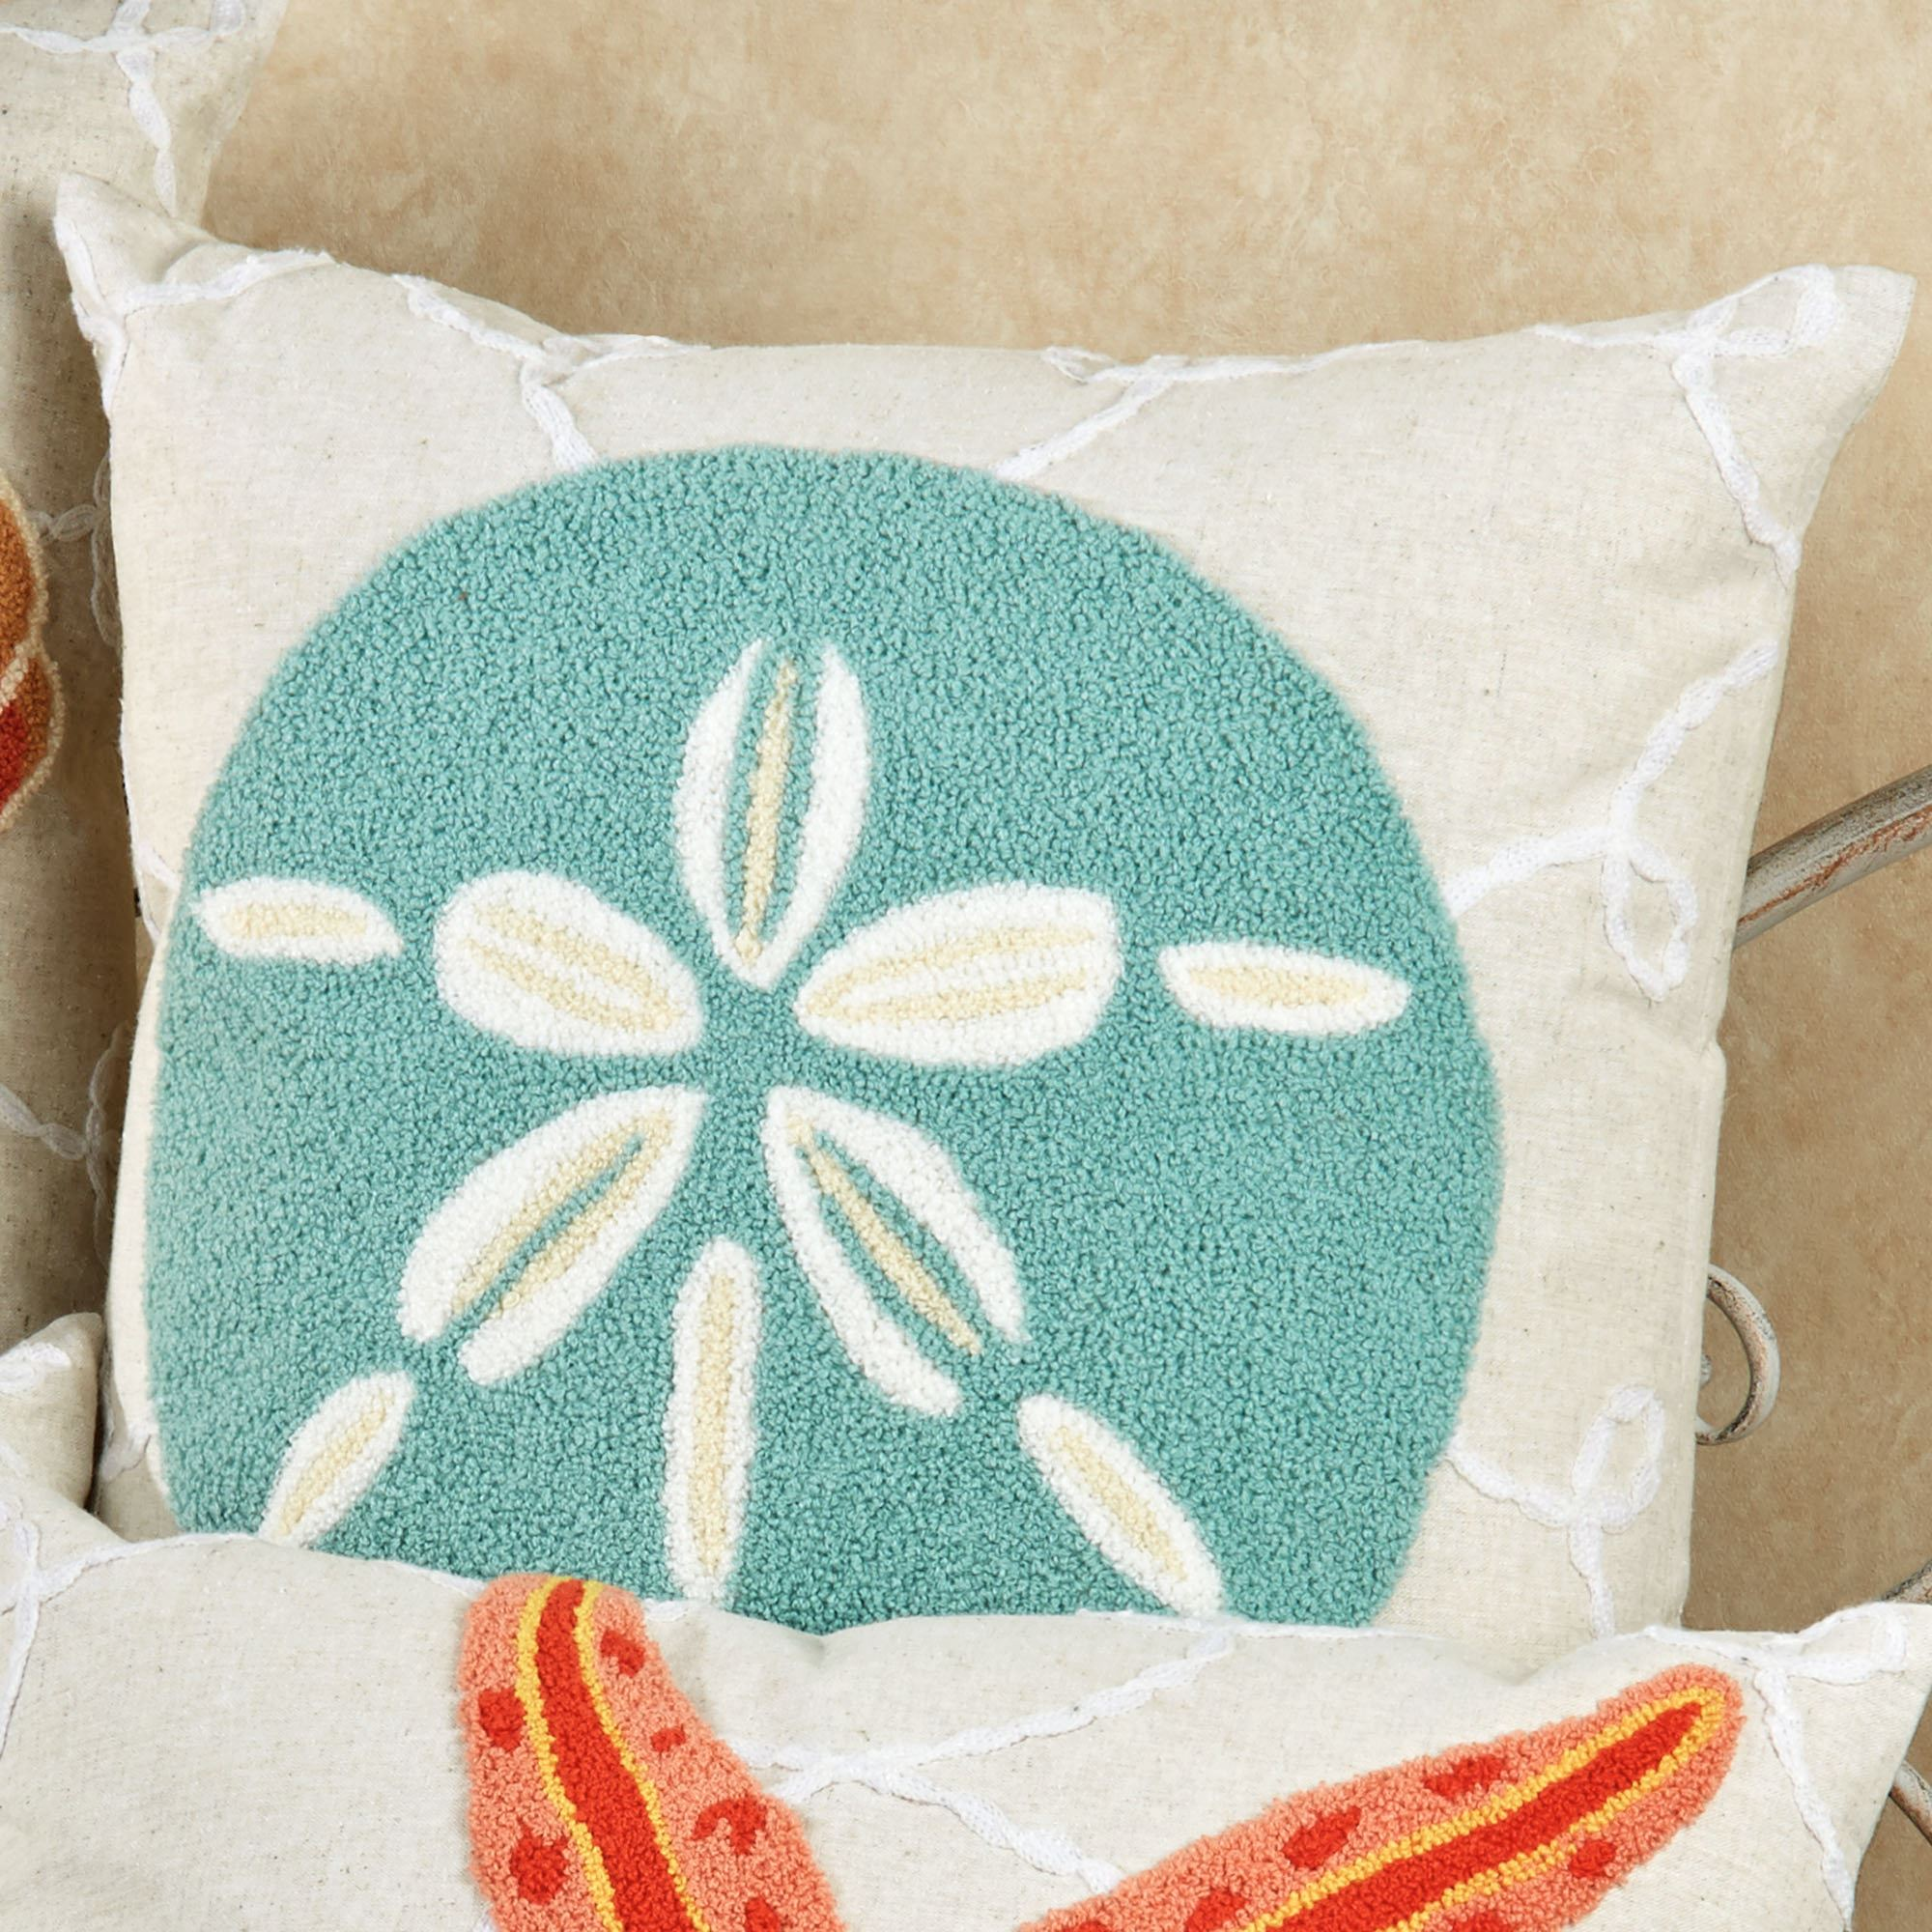 . washed ashore beach themed decorative pillows